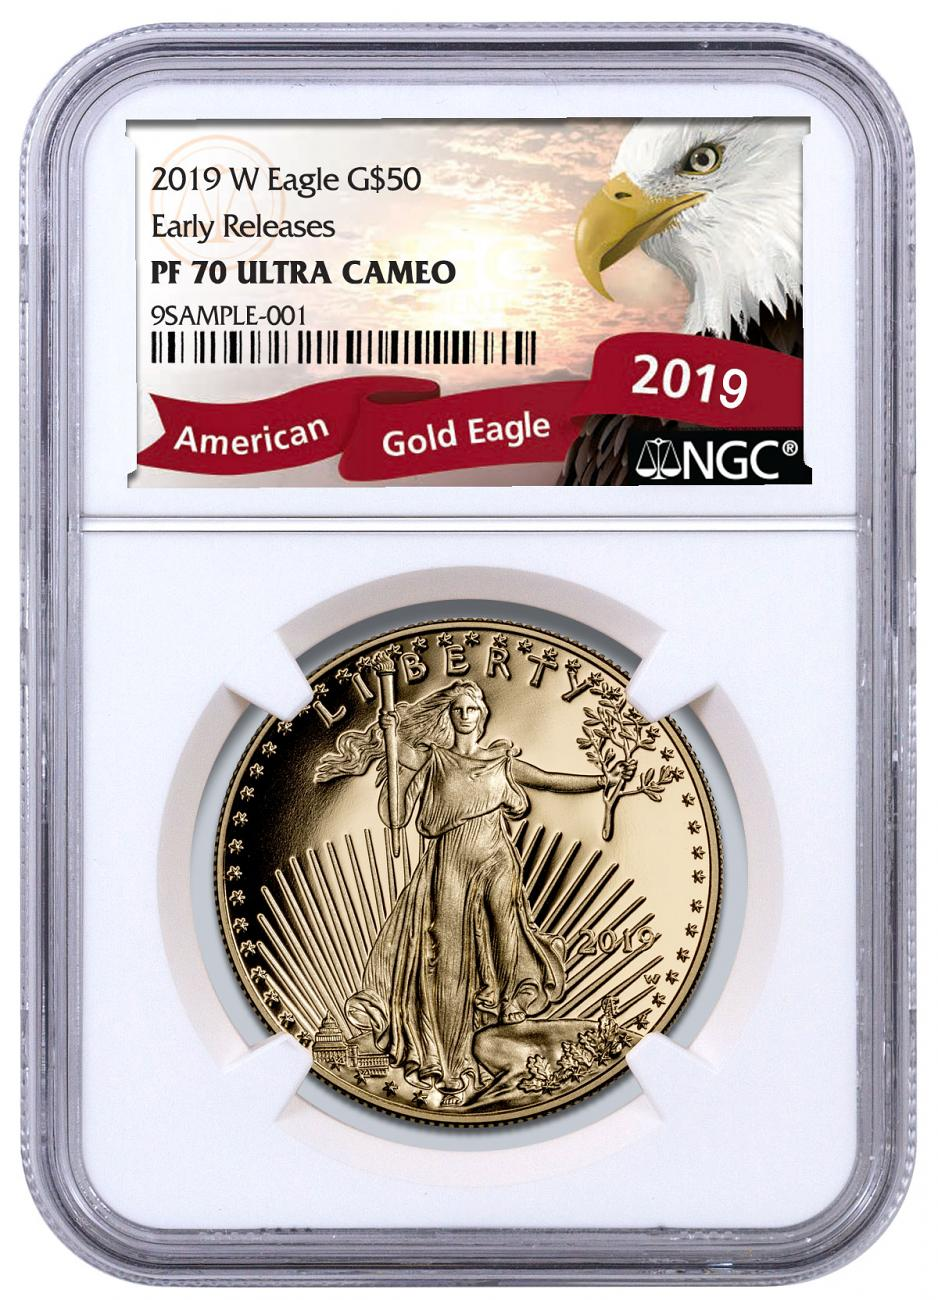 2019-W 1 oz Gold American Eagle Proof $50 NGC PF70 ER Exclusive Eagle Label